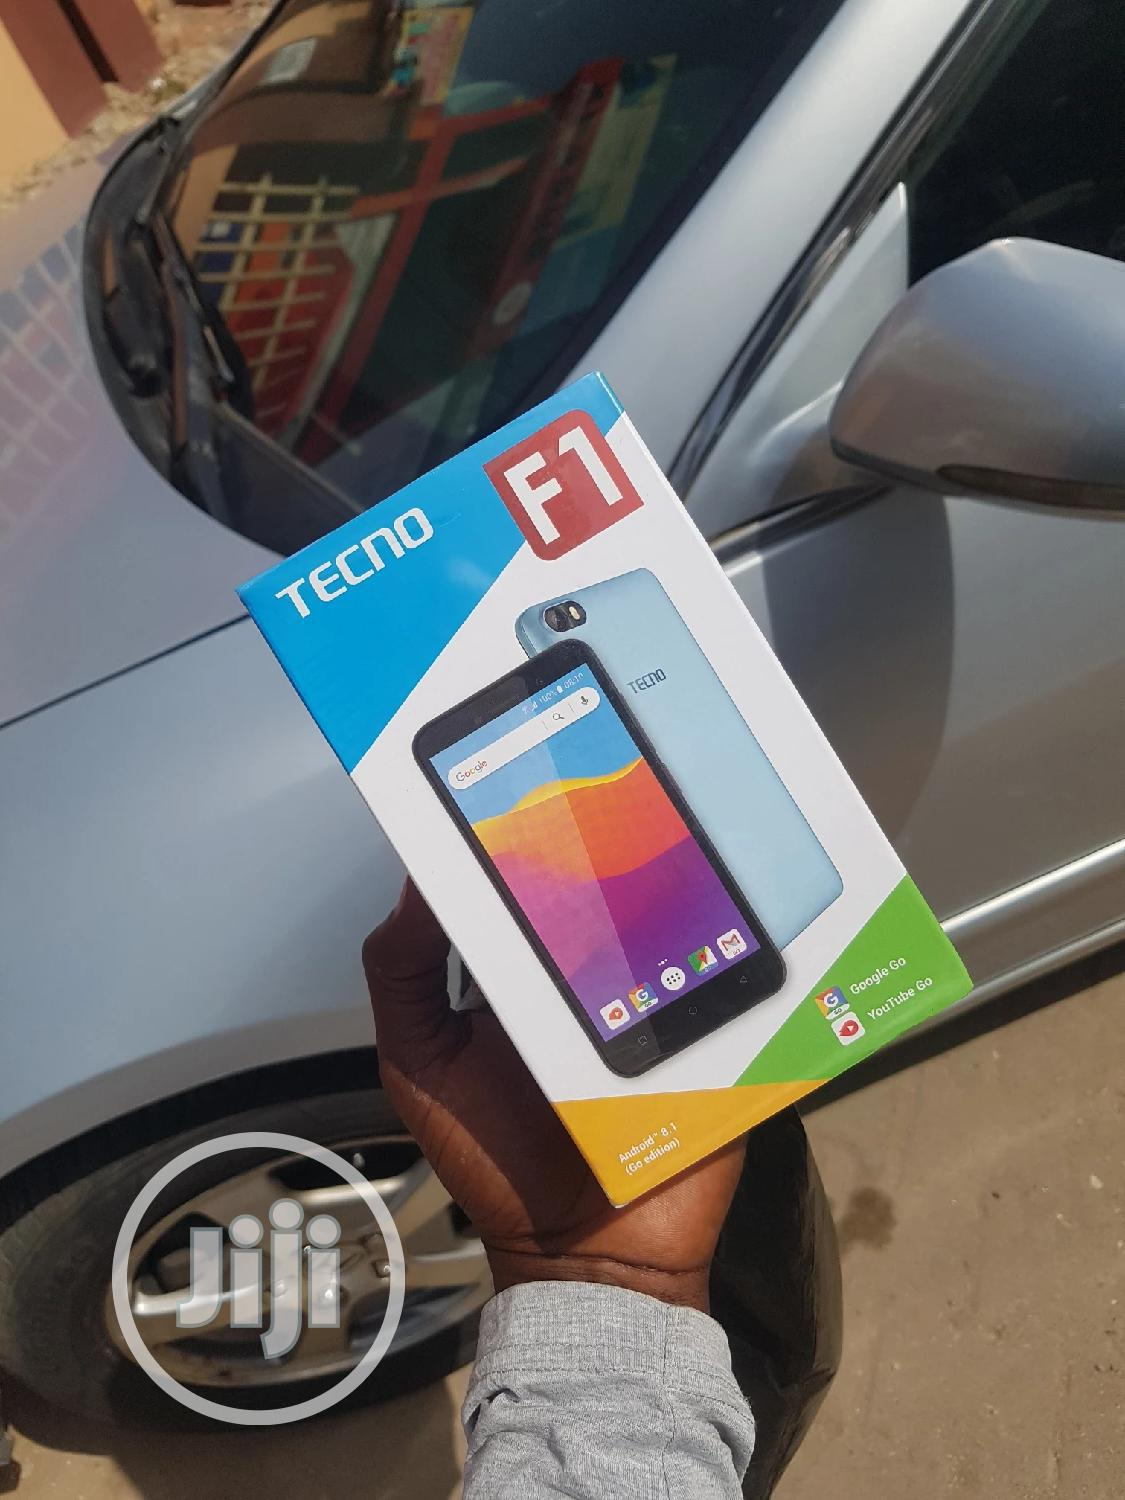 New Tecno F1 8 GB Other | Mobile Phones for sale in Wuse 2, Abuja (FCT) State, Nigeria